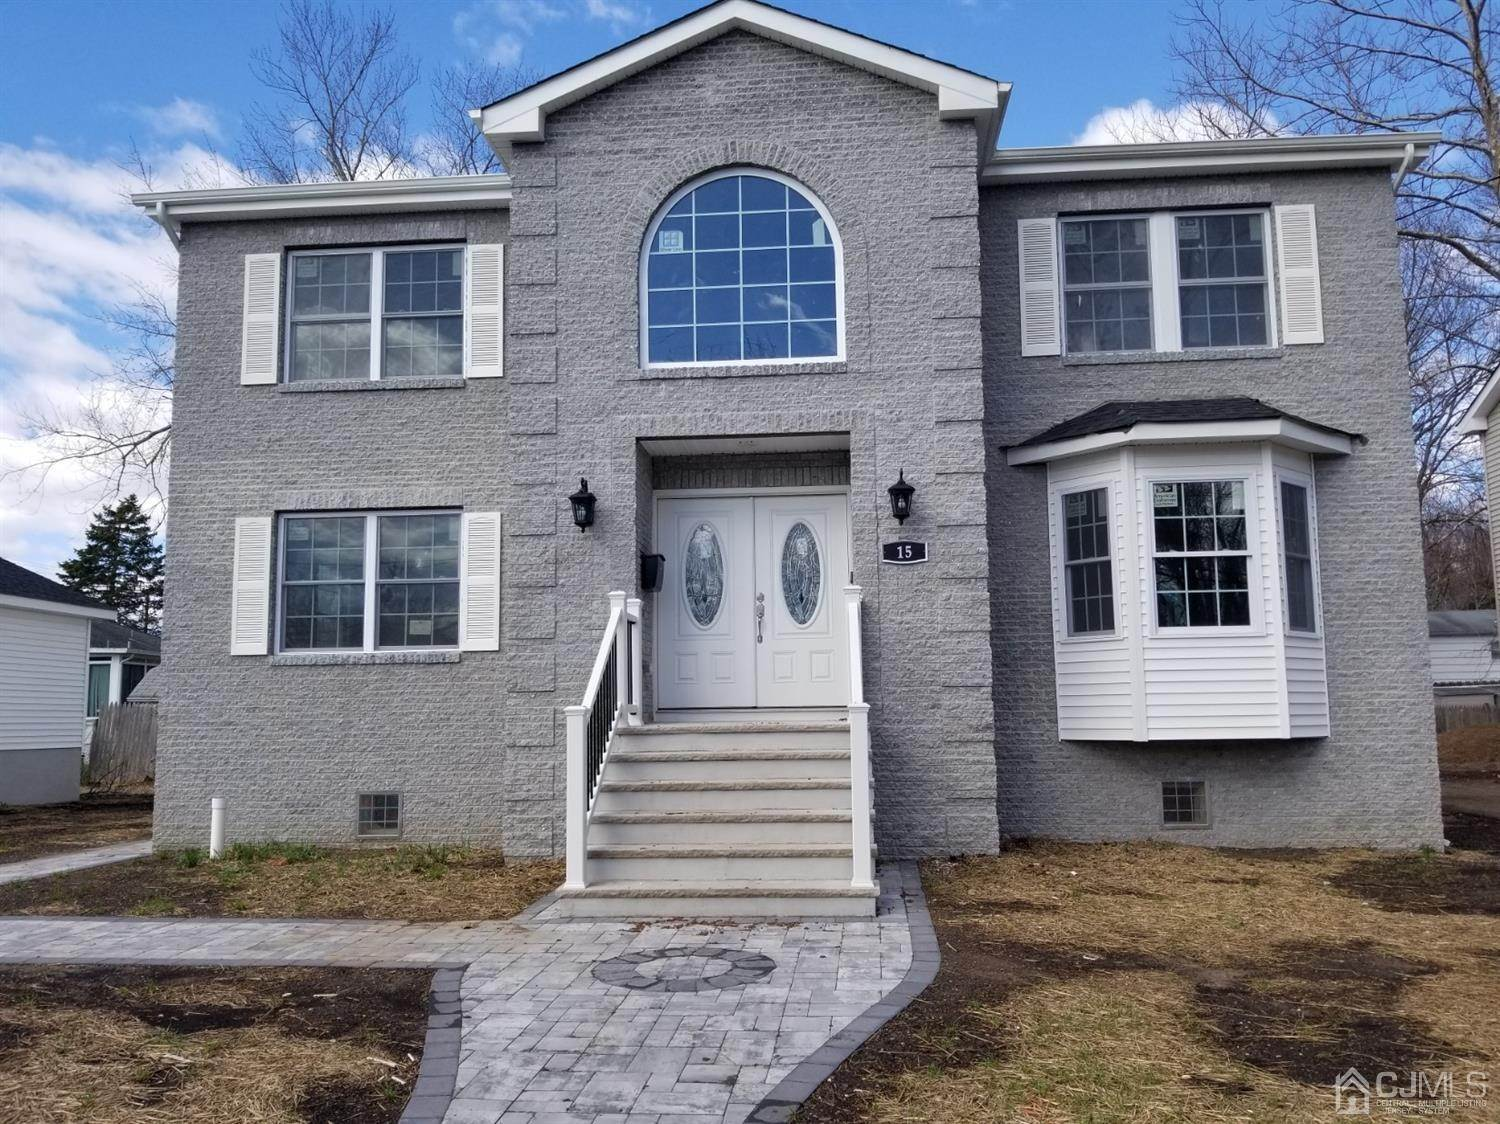 Single Family Home for Sale at 15 Adirondack Avenue Spotswood, New Jersey, 08804 United States